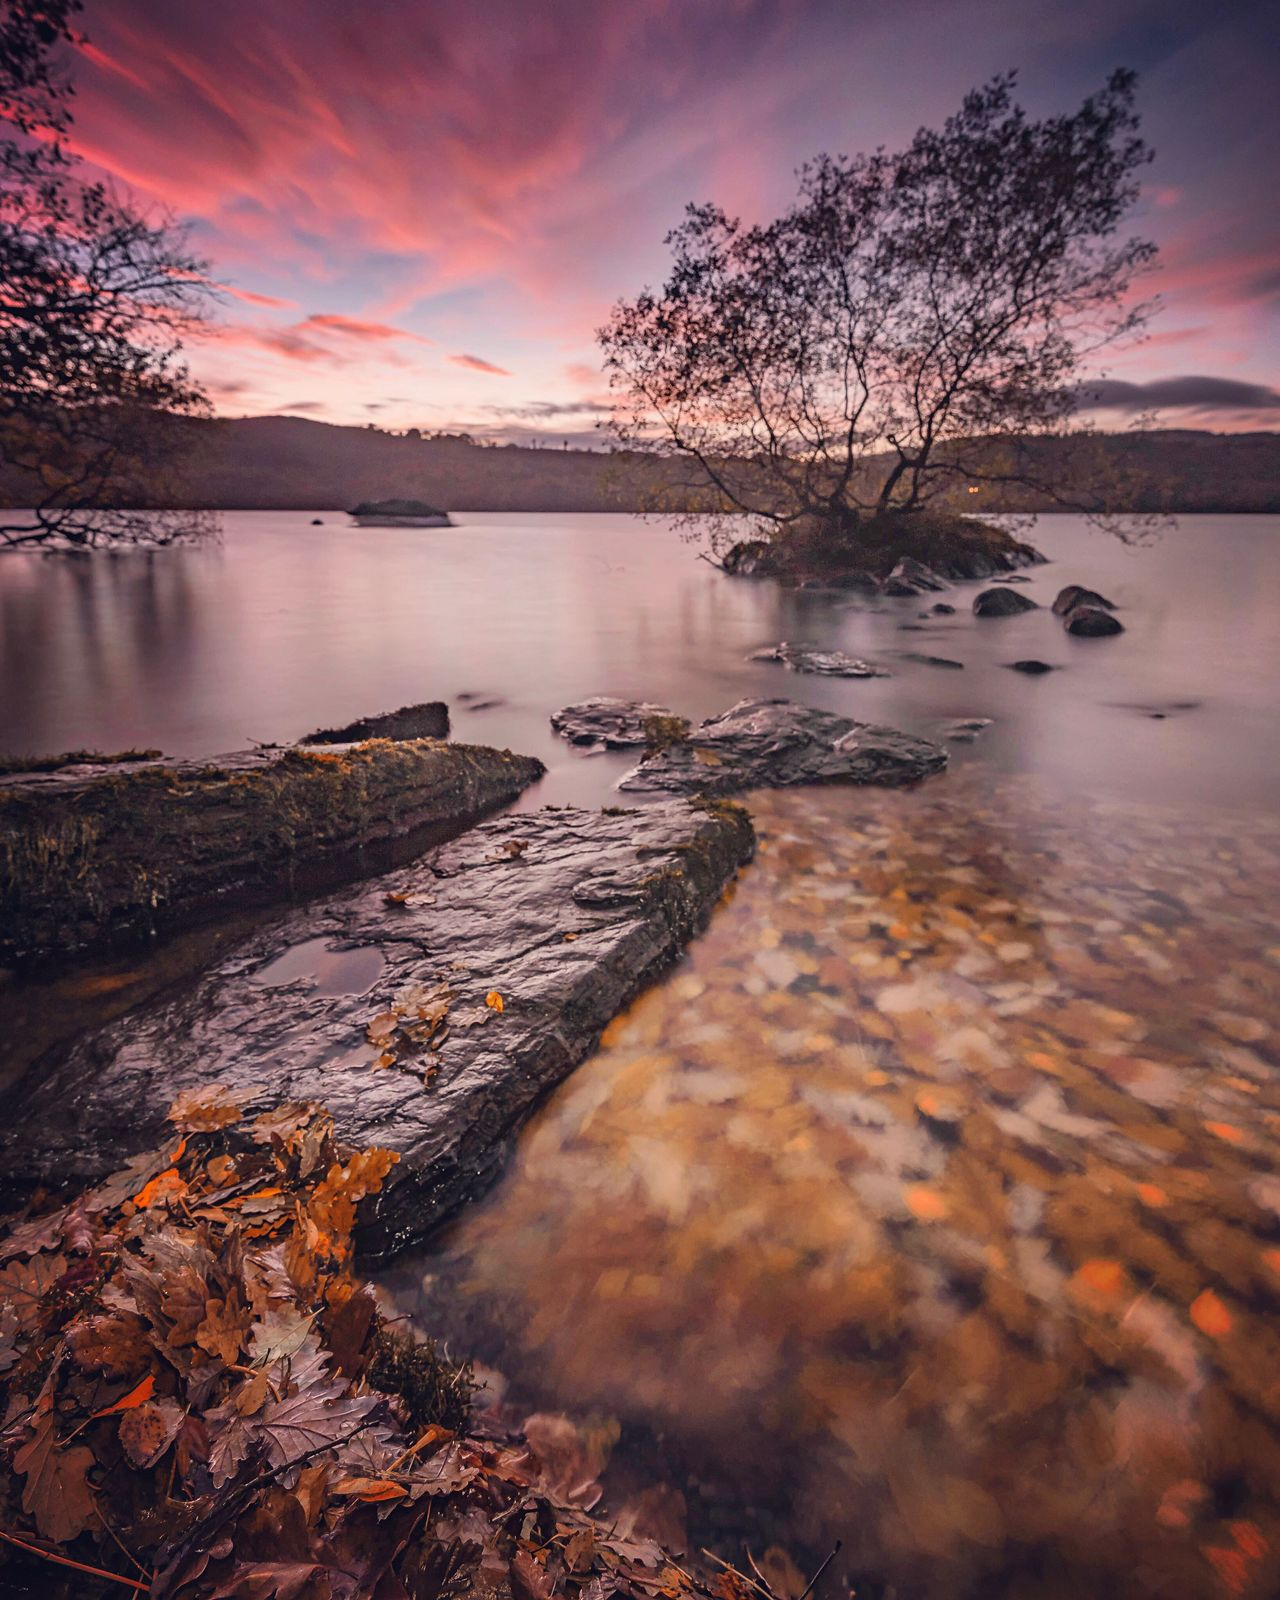 Leaf Surge | Windermere, Lake District U.K. Sunset Nature Tree Water Beauty In Nature No People Scenics Outdoors Sky Day Windermere Lake View Lake District Waterscape Travel Photography Landscape Travel Destinations Abstractions In Colors Beauty In Nature Sky And Clouds Sky_collection Skyporn Cloudporn Lakes  Water Reflections